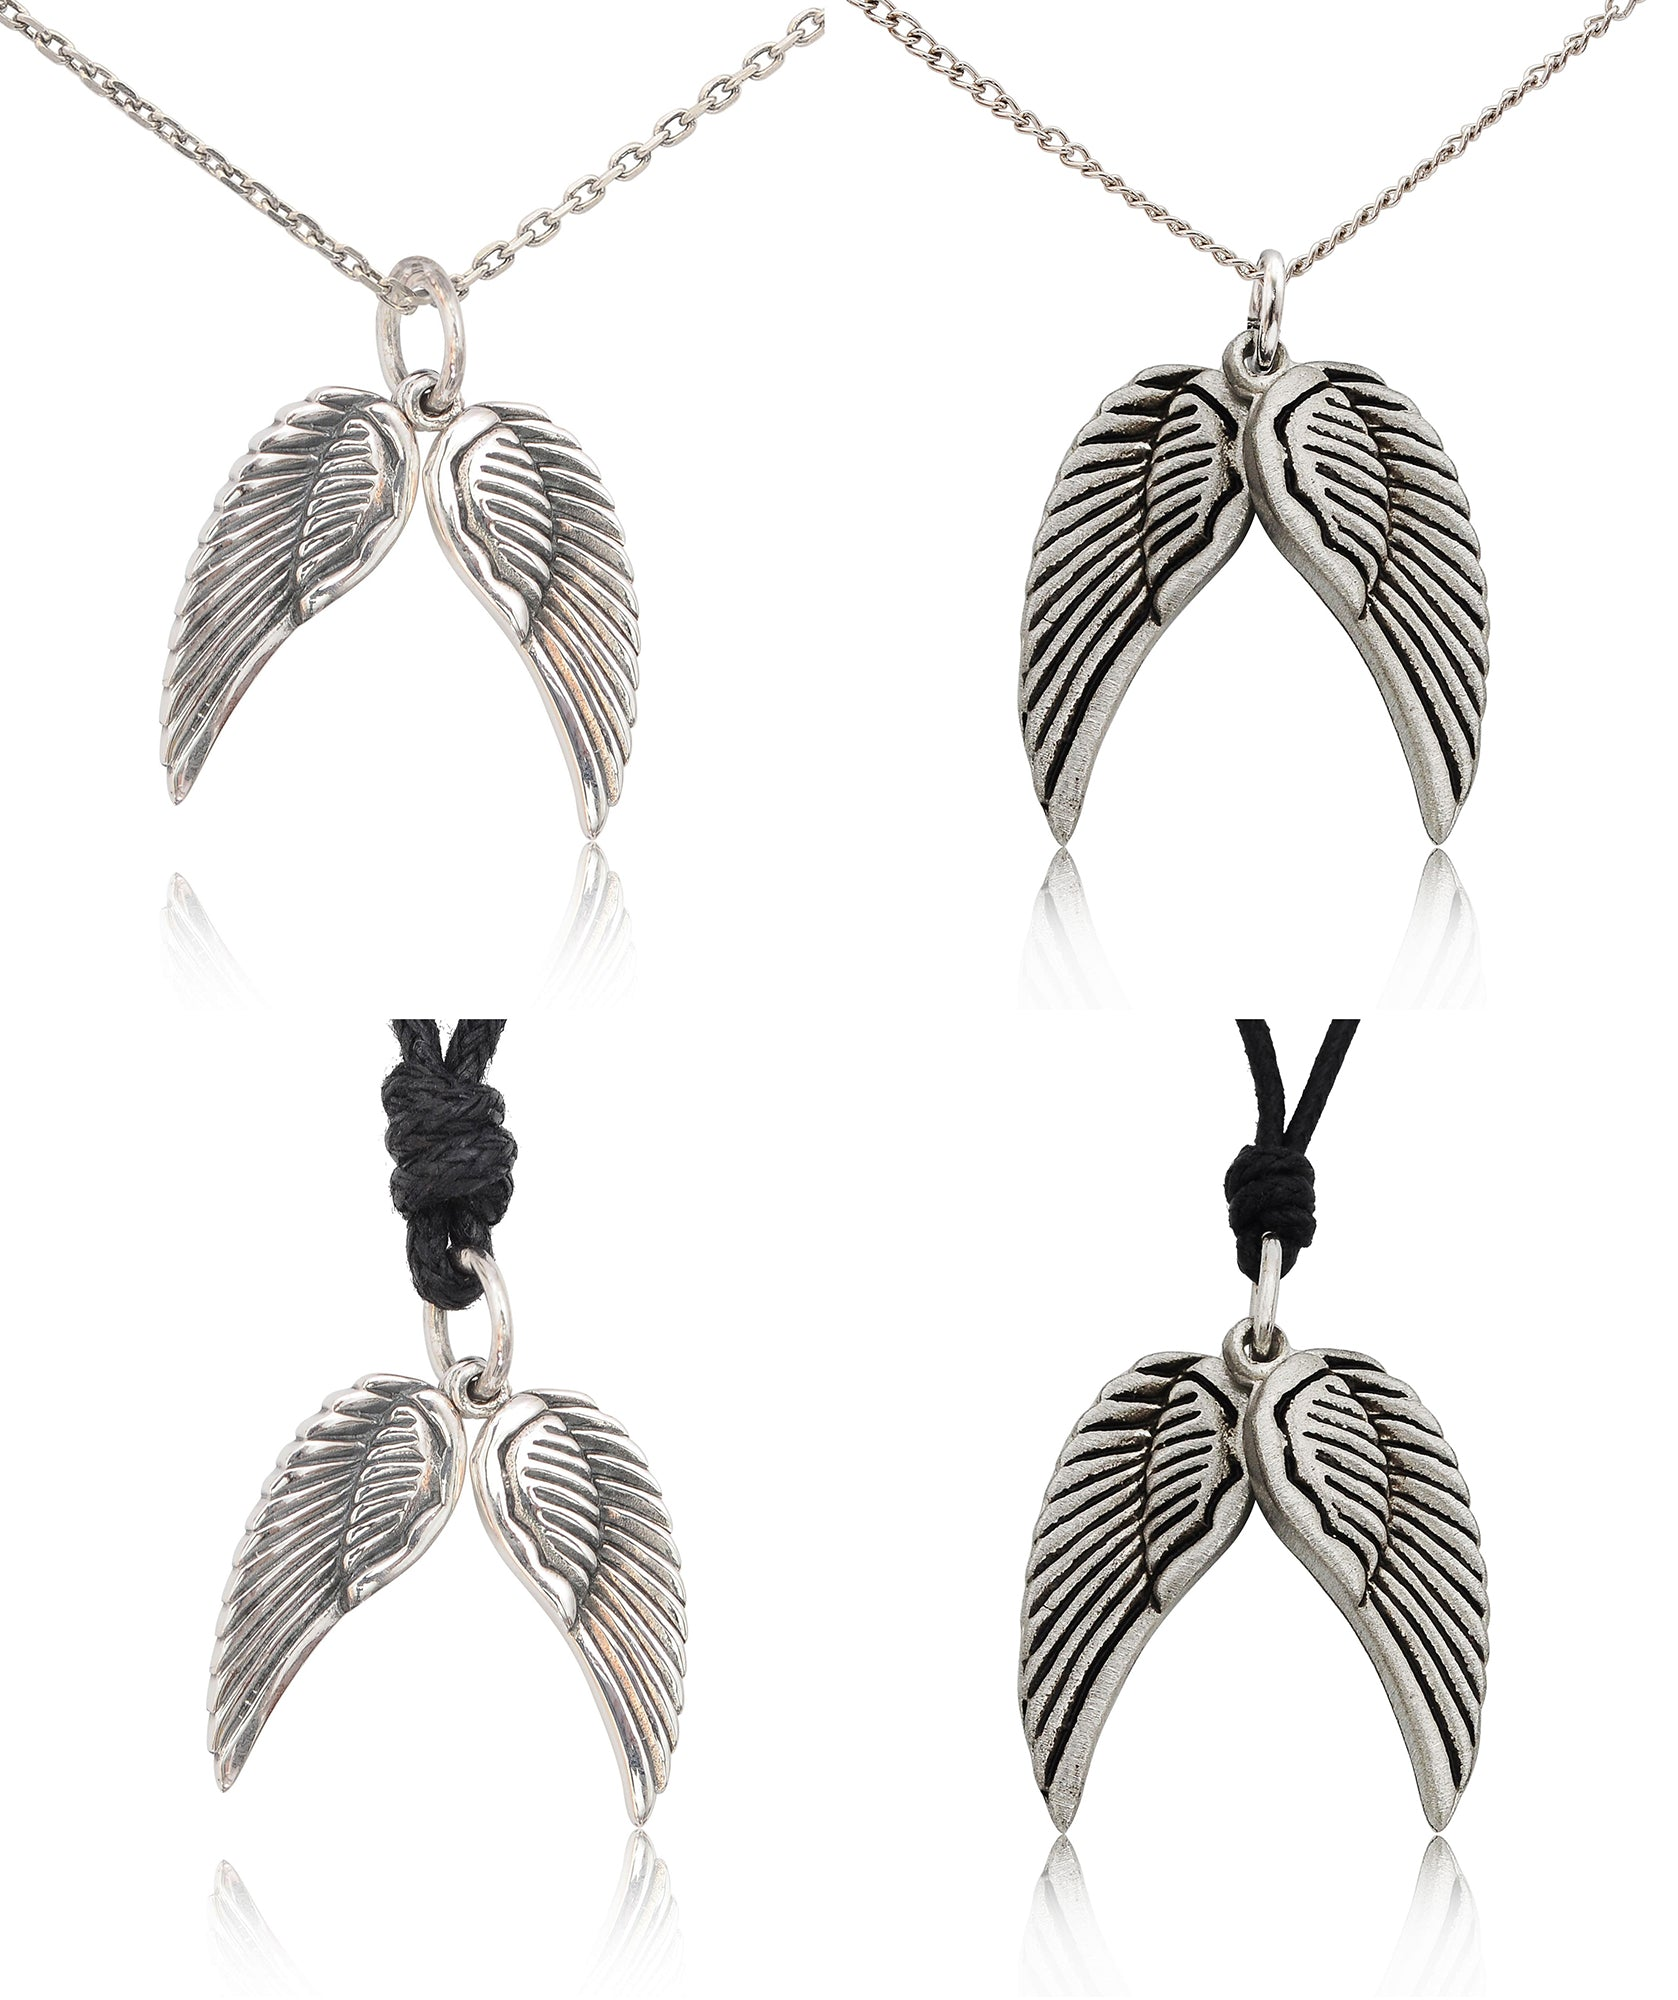 Pair Angel Wings 92.5 Sterling Silver Pewter Charm Necklace Pendant Jewelry